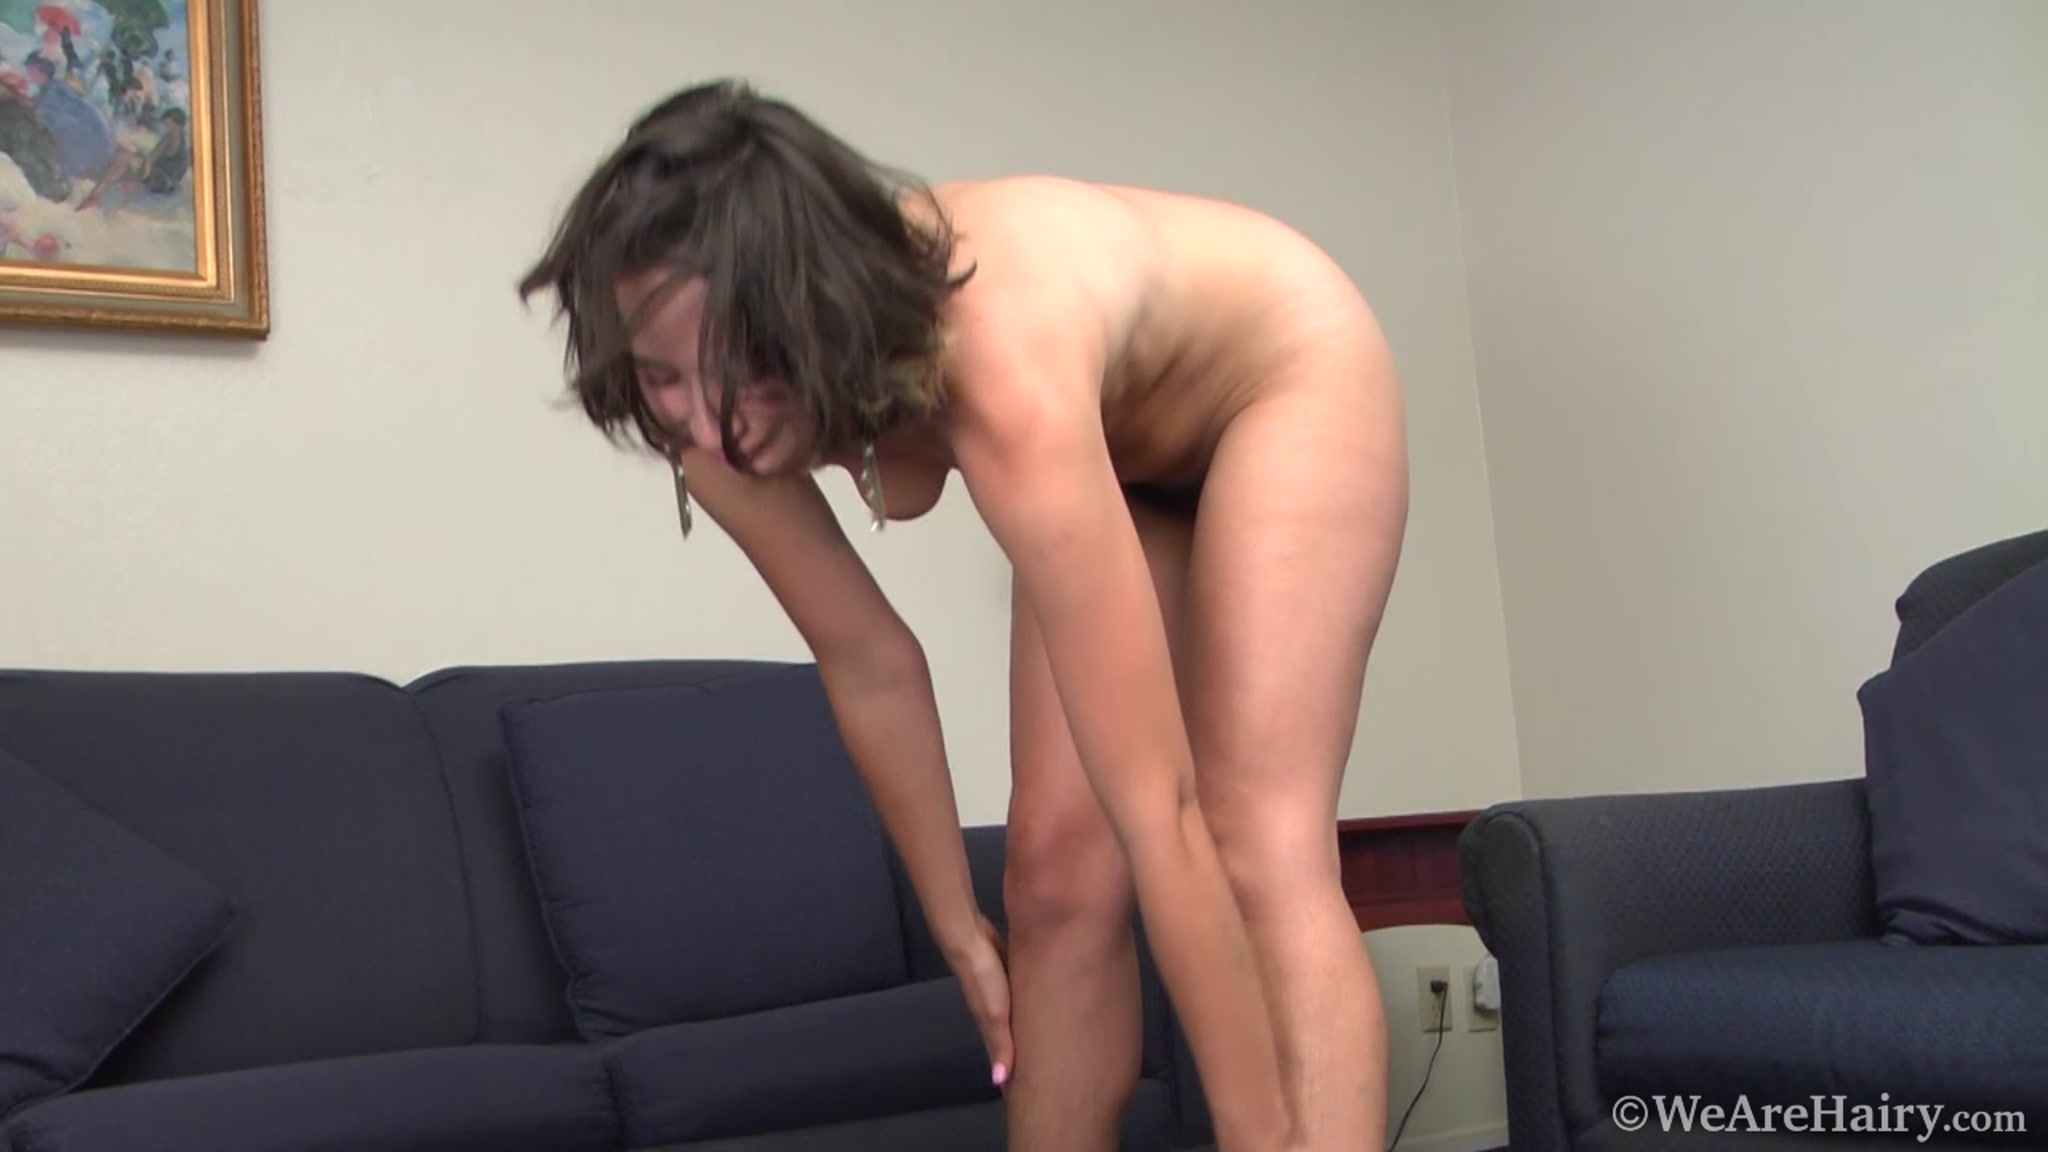 HRY_170610.mp4.00000,